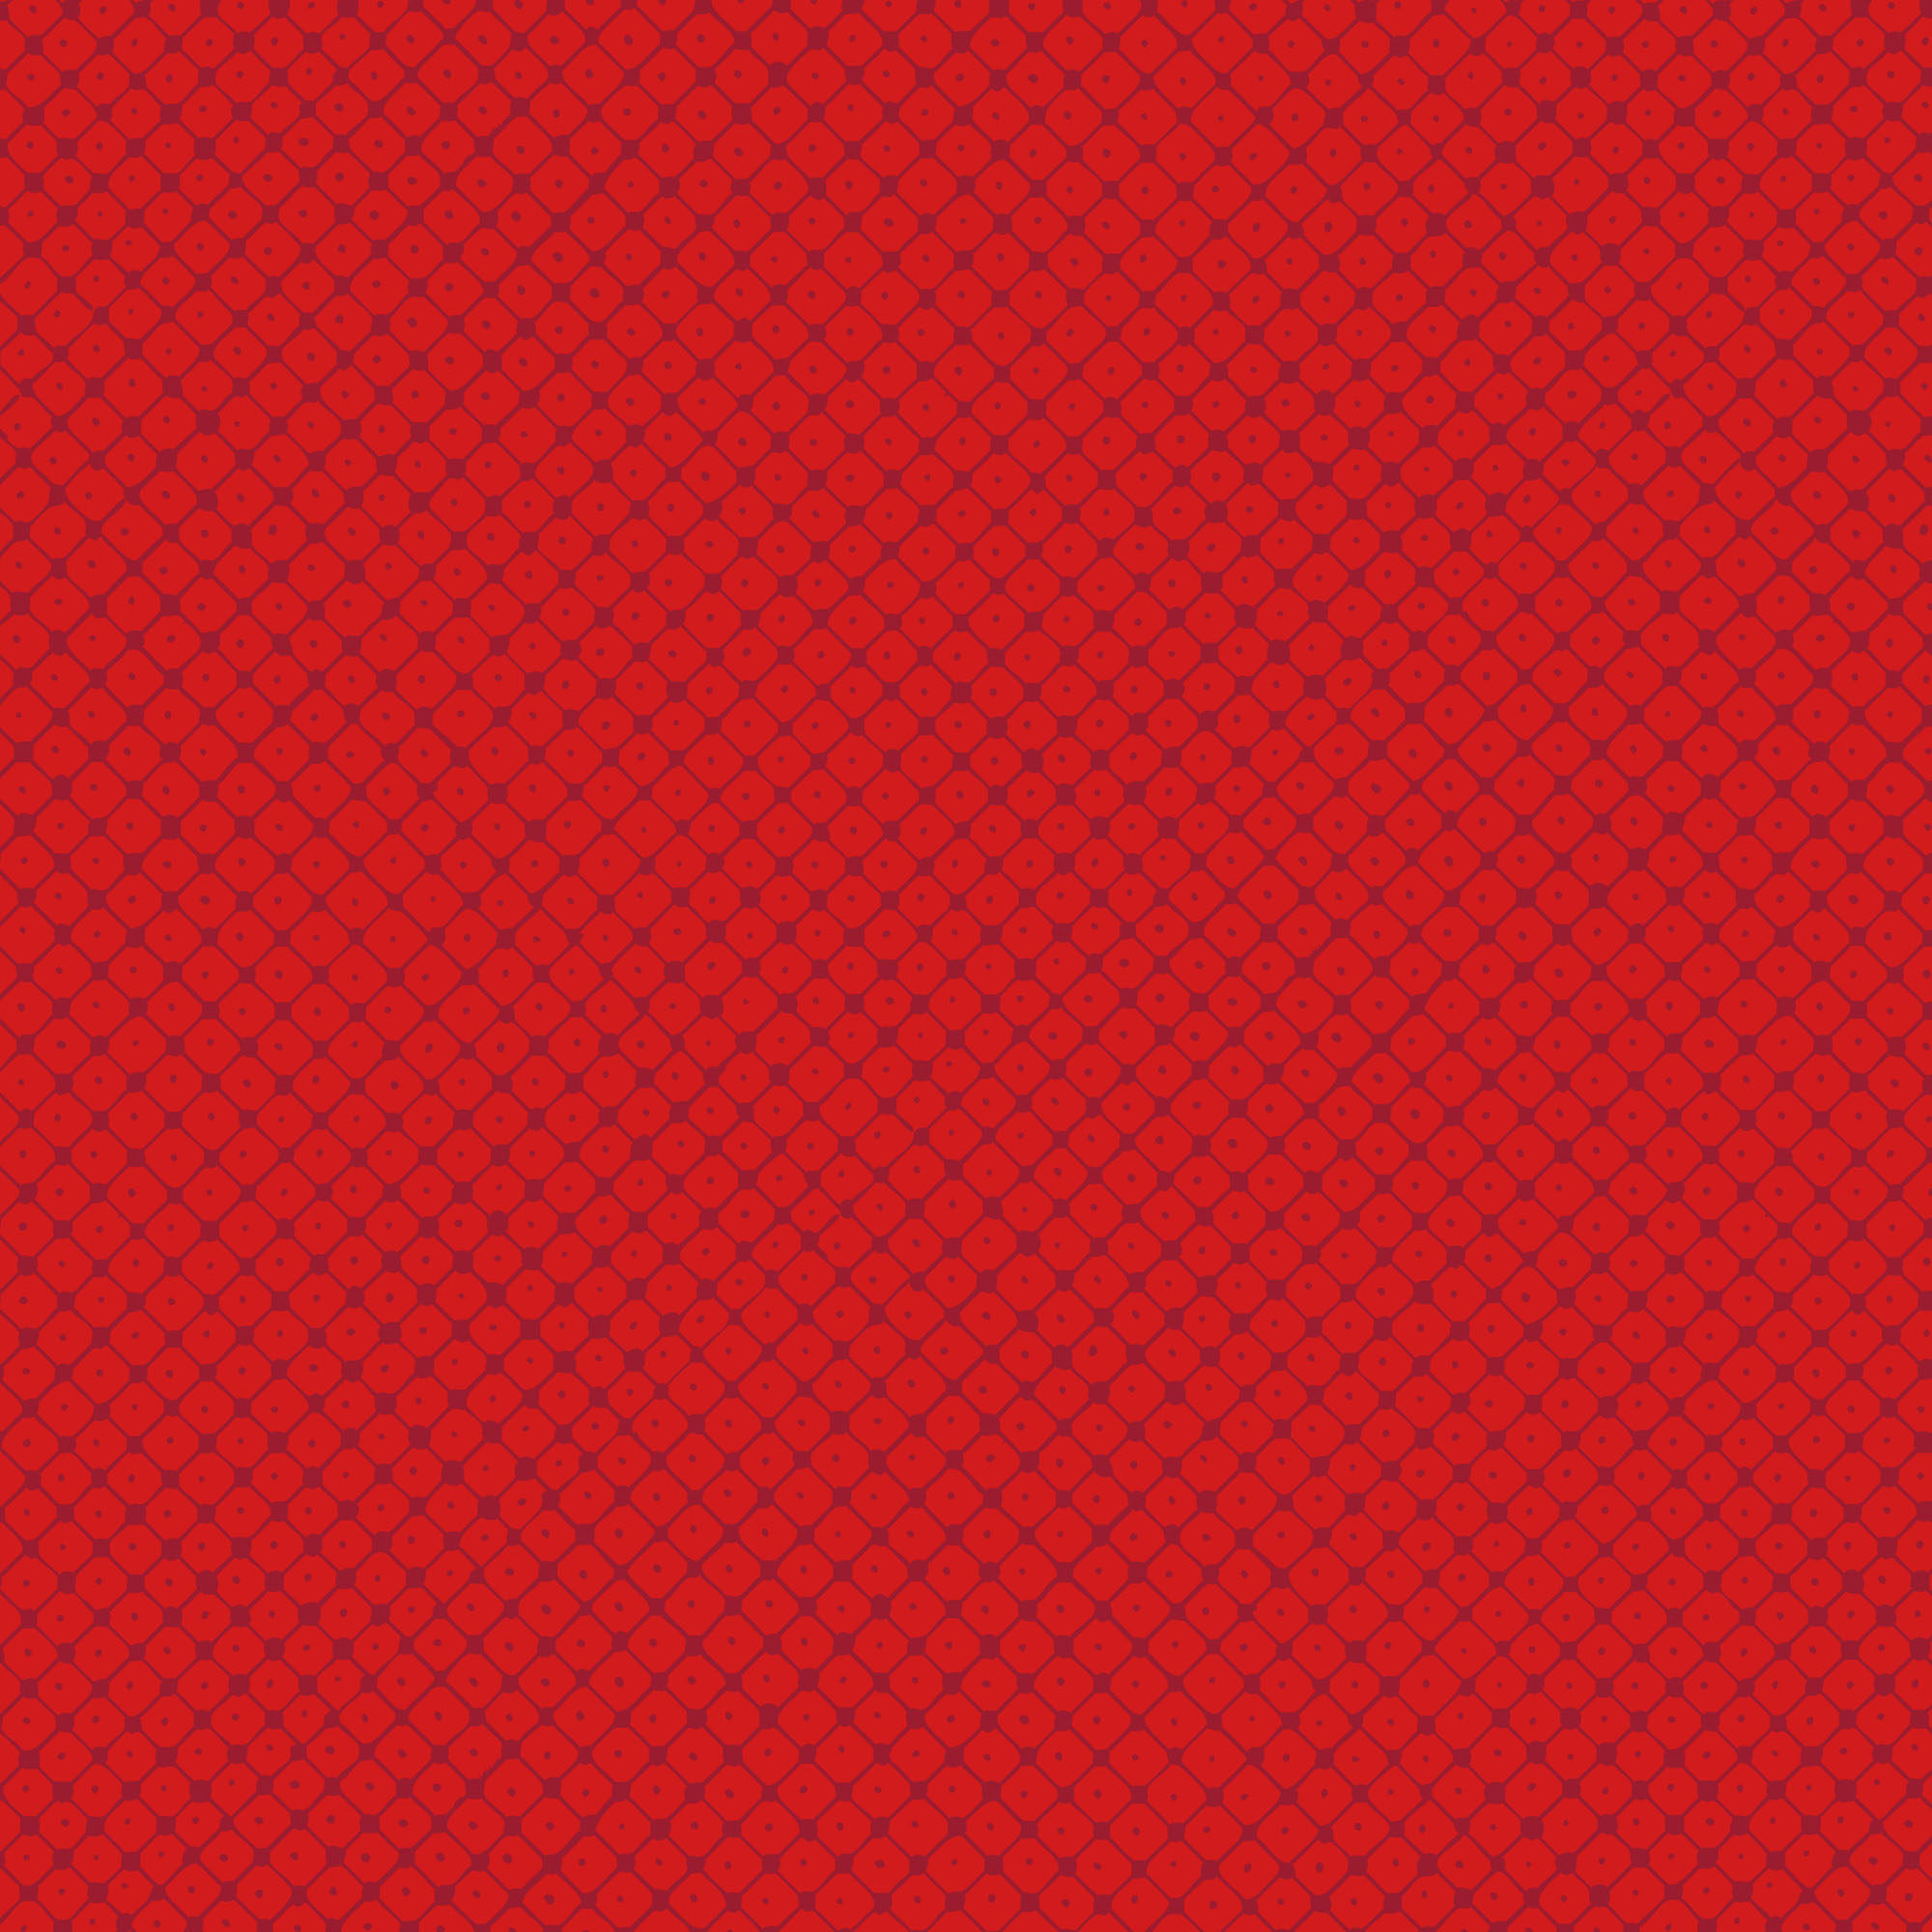 grid.red